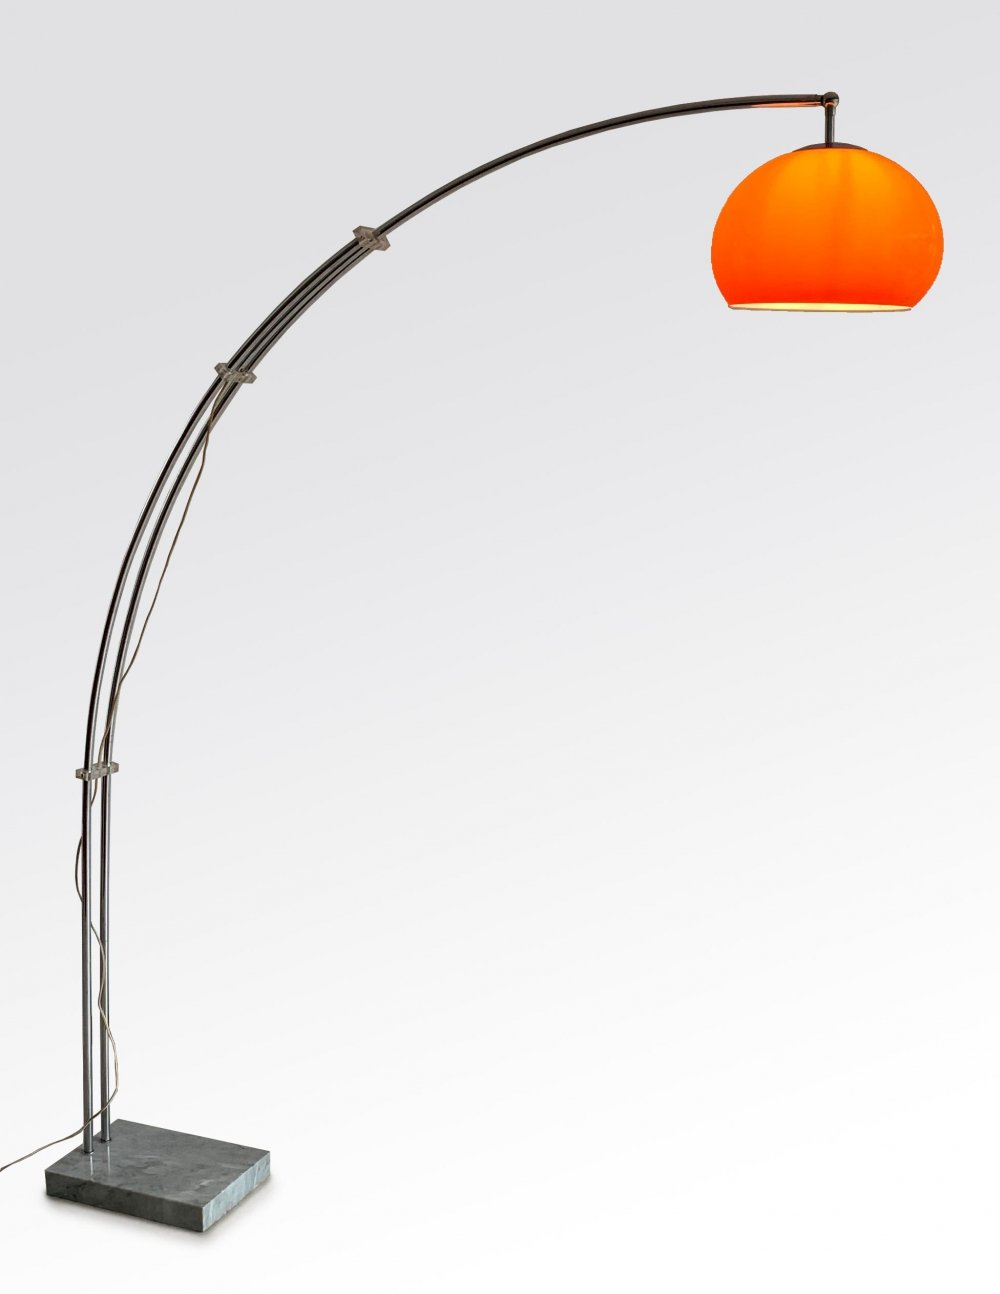 Gepo Arch lamp with orange shade, 1970s